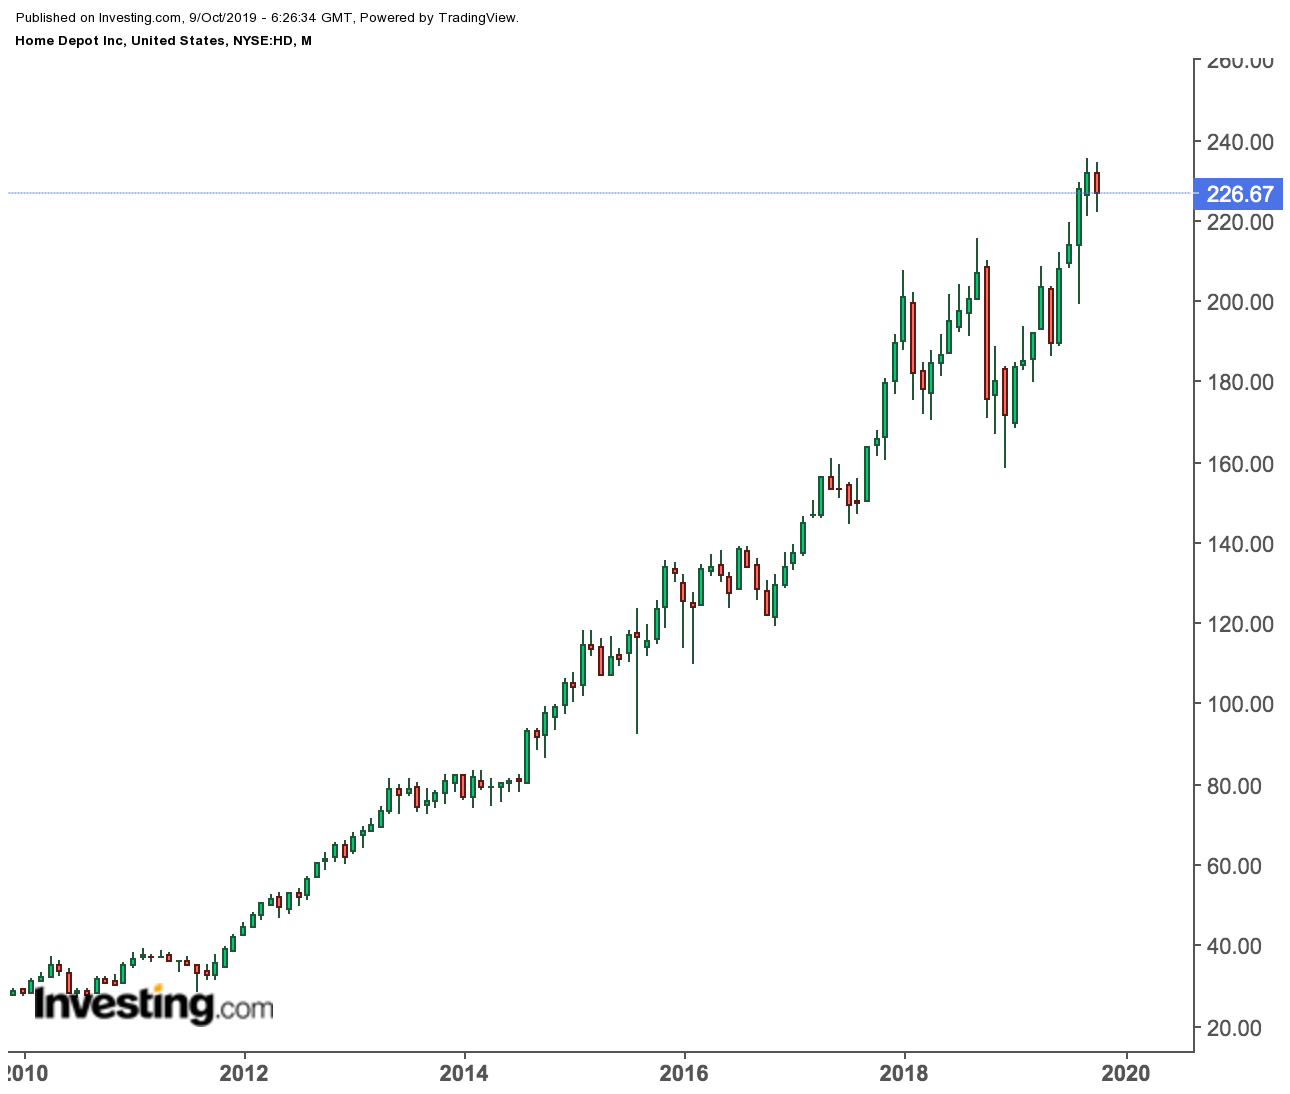 Home Depot price chart